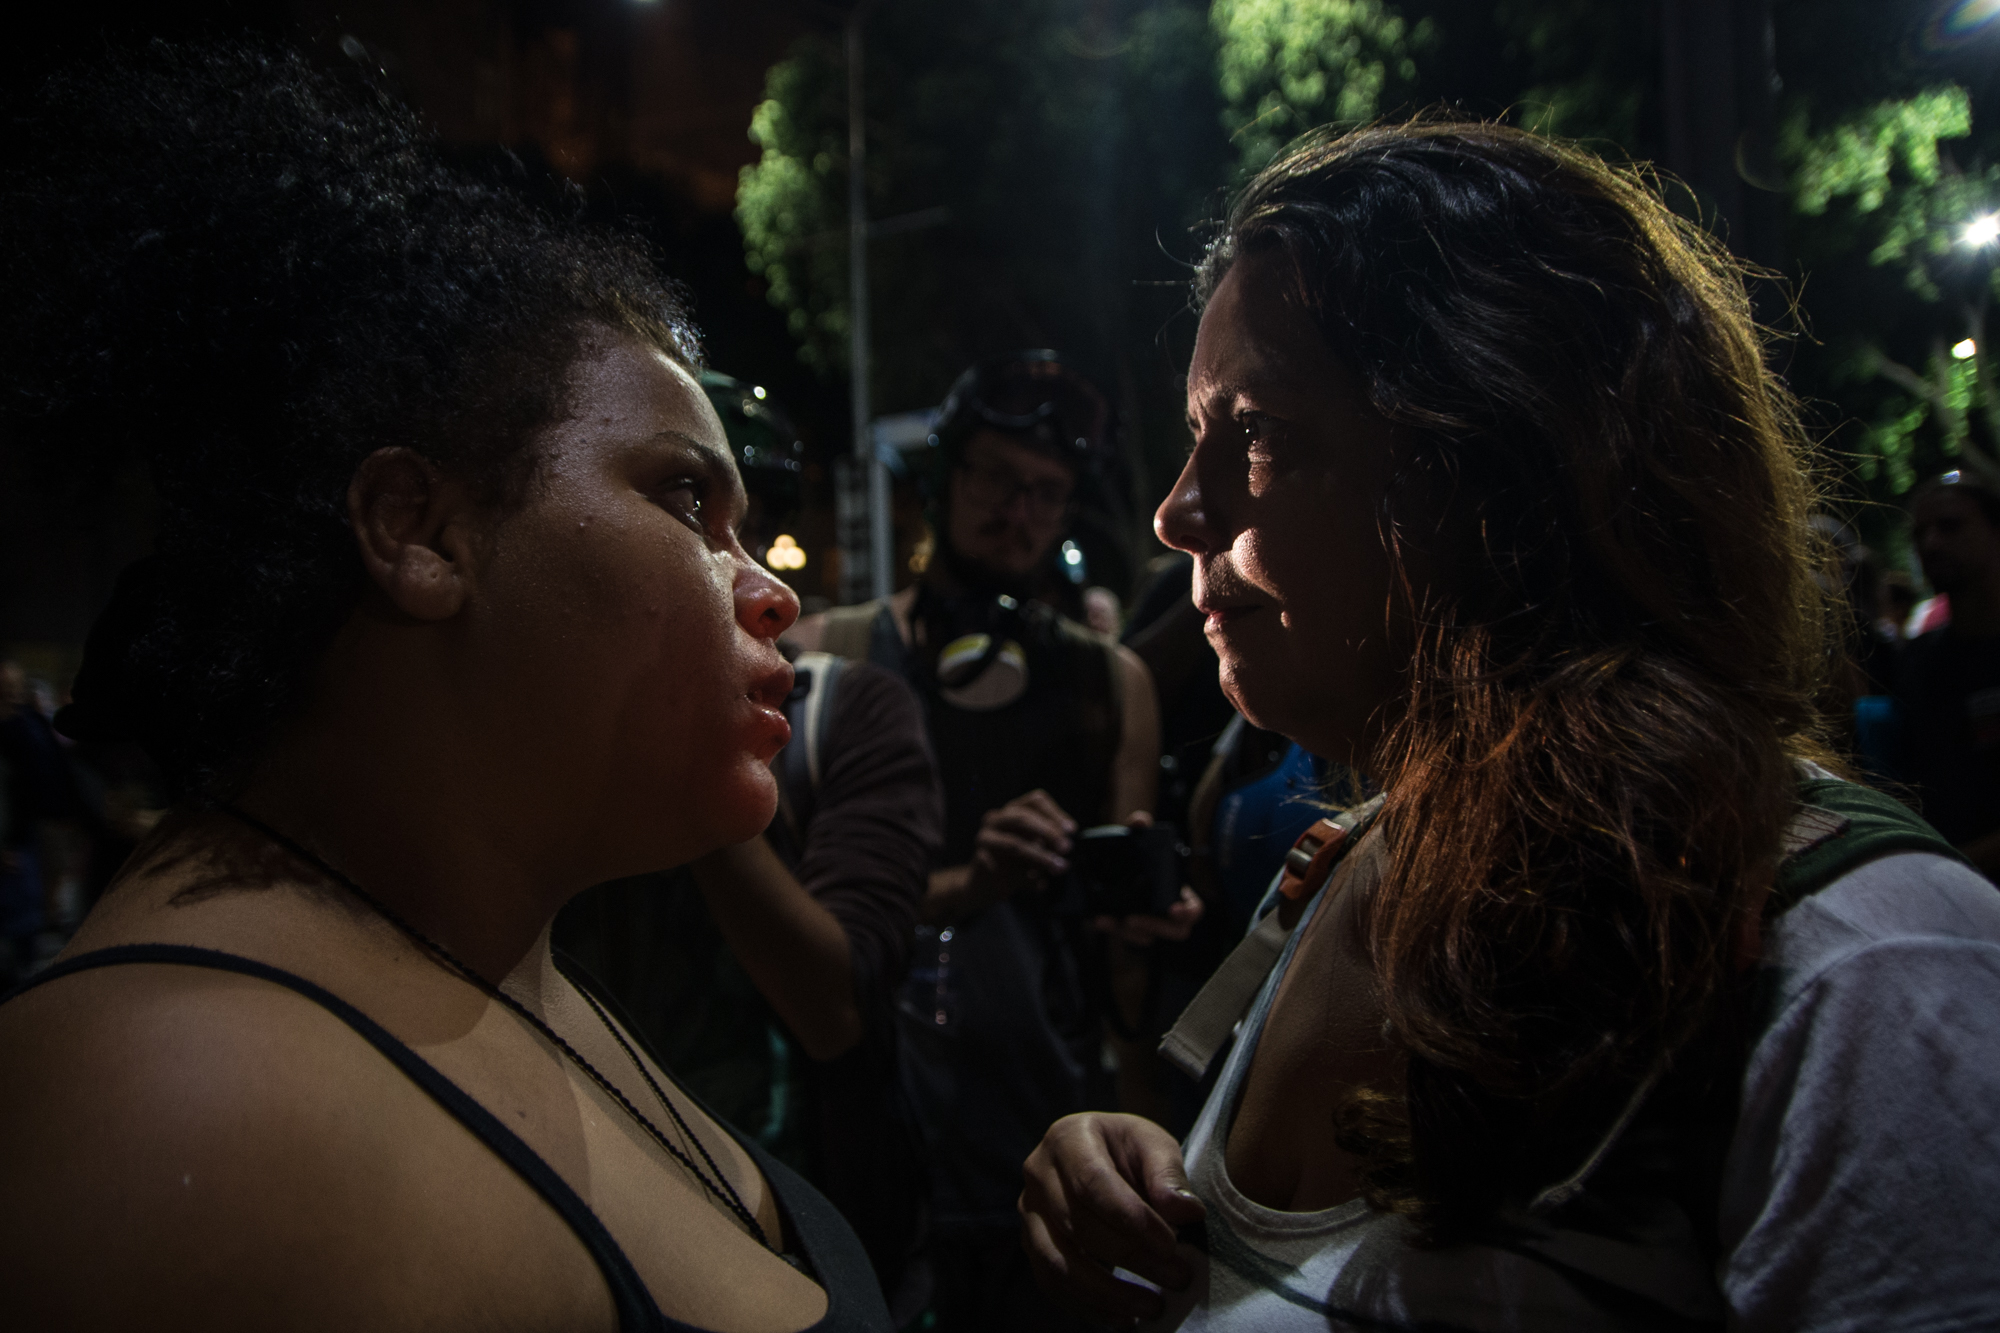 Demonstrators argue during a national protest against the social welfare reform bill introduced by the government of President Michel Temer, which seeks to extend the years of contributions and raise the minimum age for retirement, in Rio de Janeiro, Brazil on March 31, 2017.